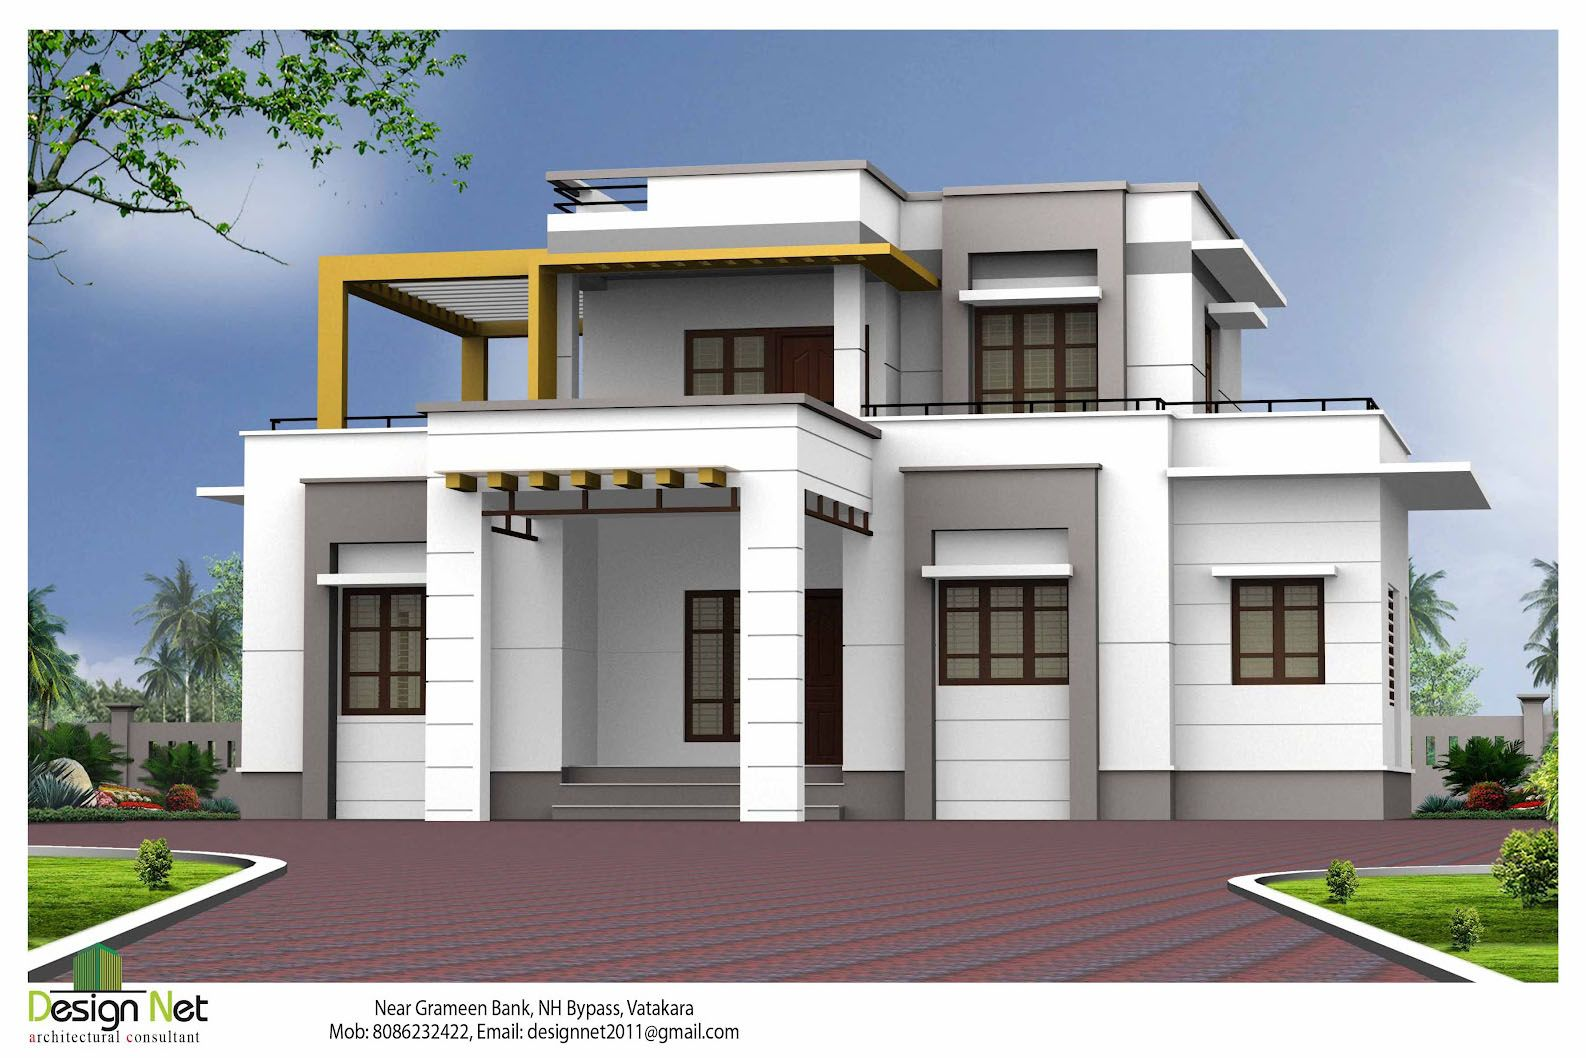 house design on pinterest house with images about exterior house